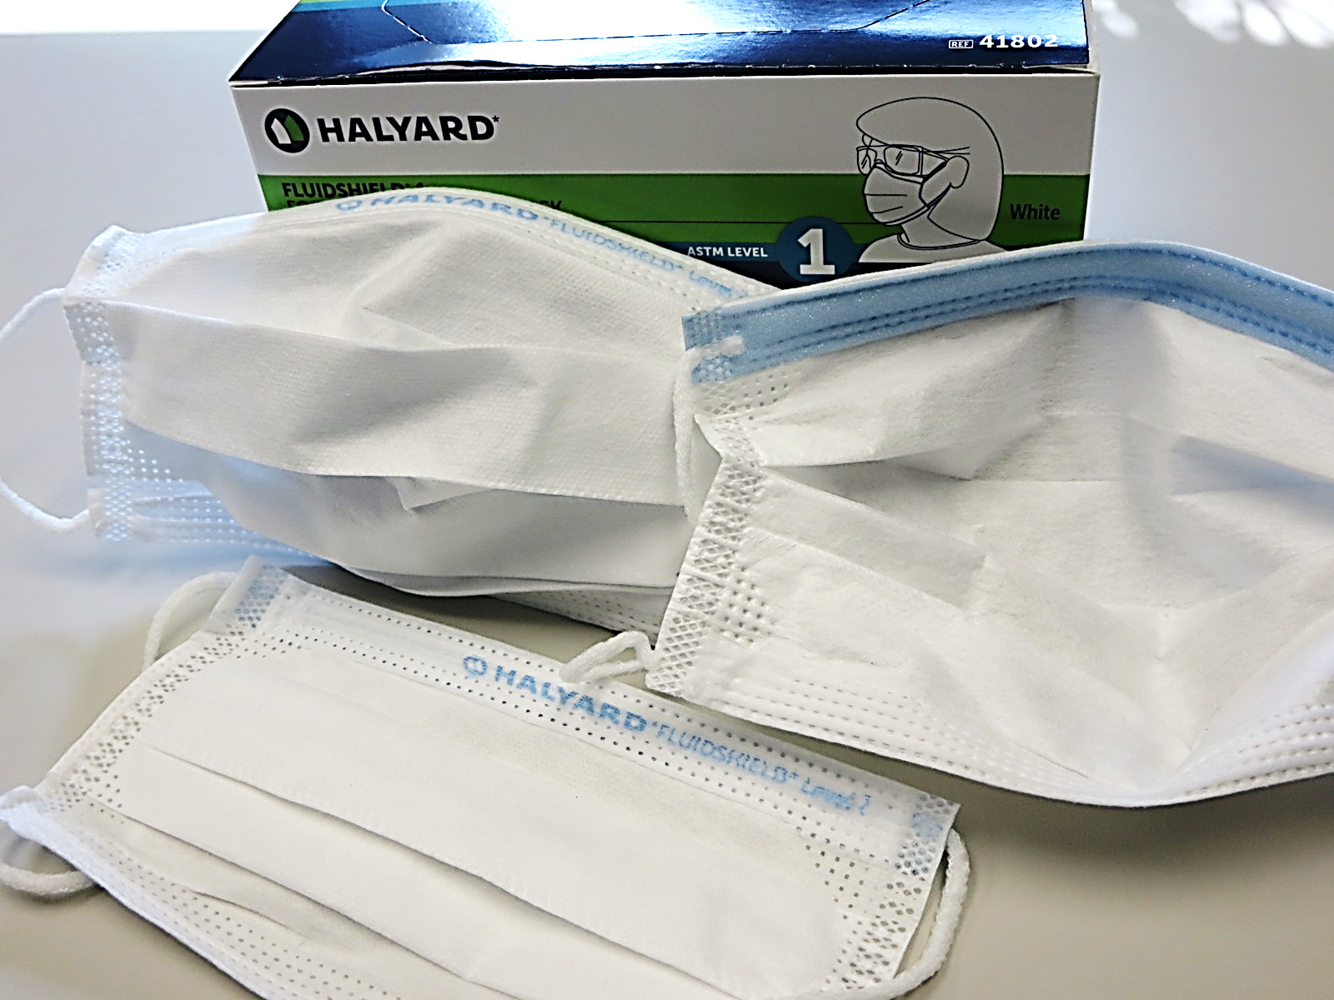 41802 Halyard® Fluidshield® ASTM Level 1 Fog-Free Pleated Procedure Masks w/ So-Soft Technology